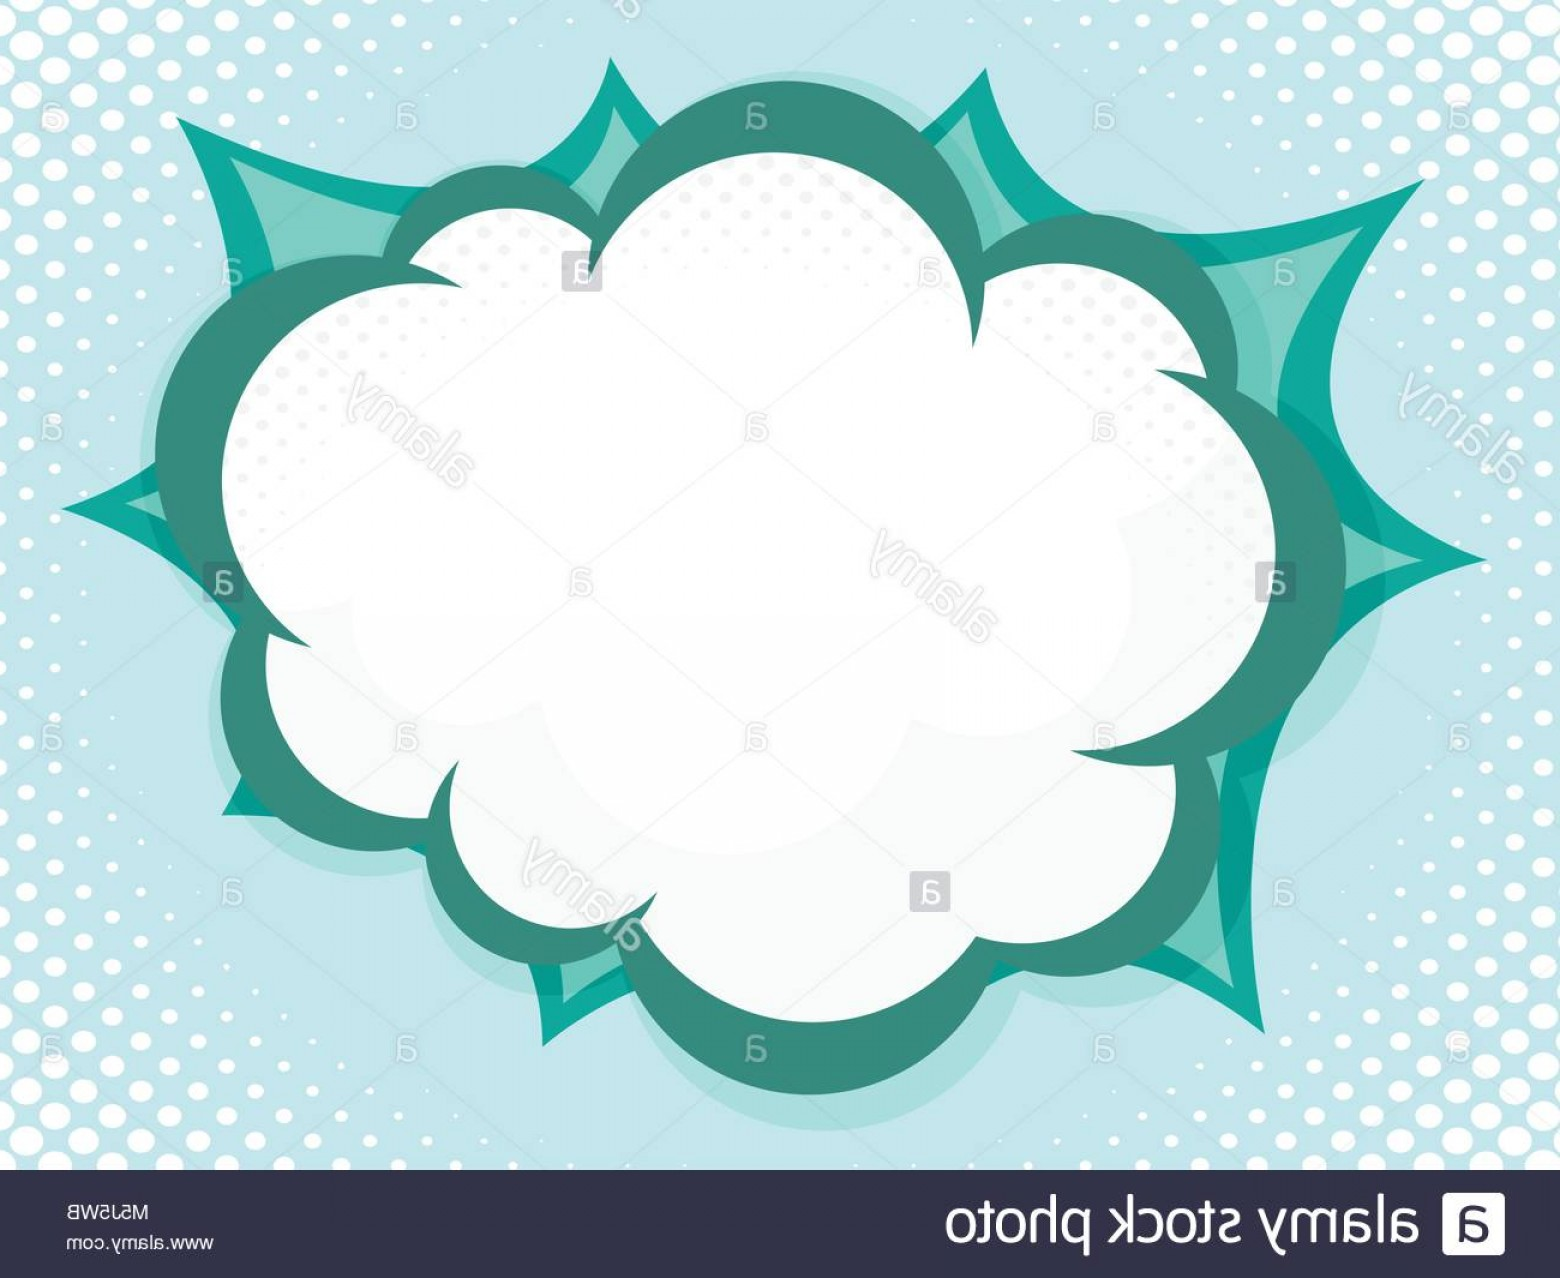 Comic Book Vector Graphics: Stock Photo Illustration Of Blank Speech Bubble Pop Art Comic Book Vector Background